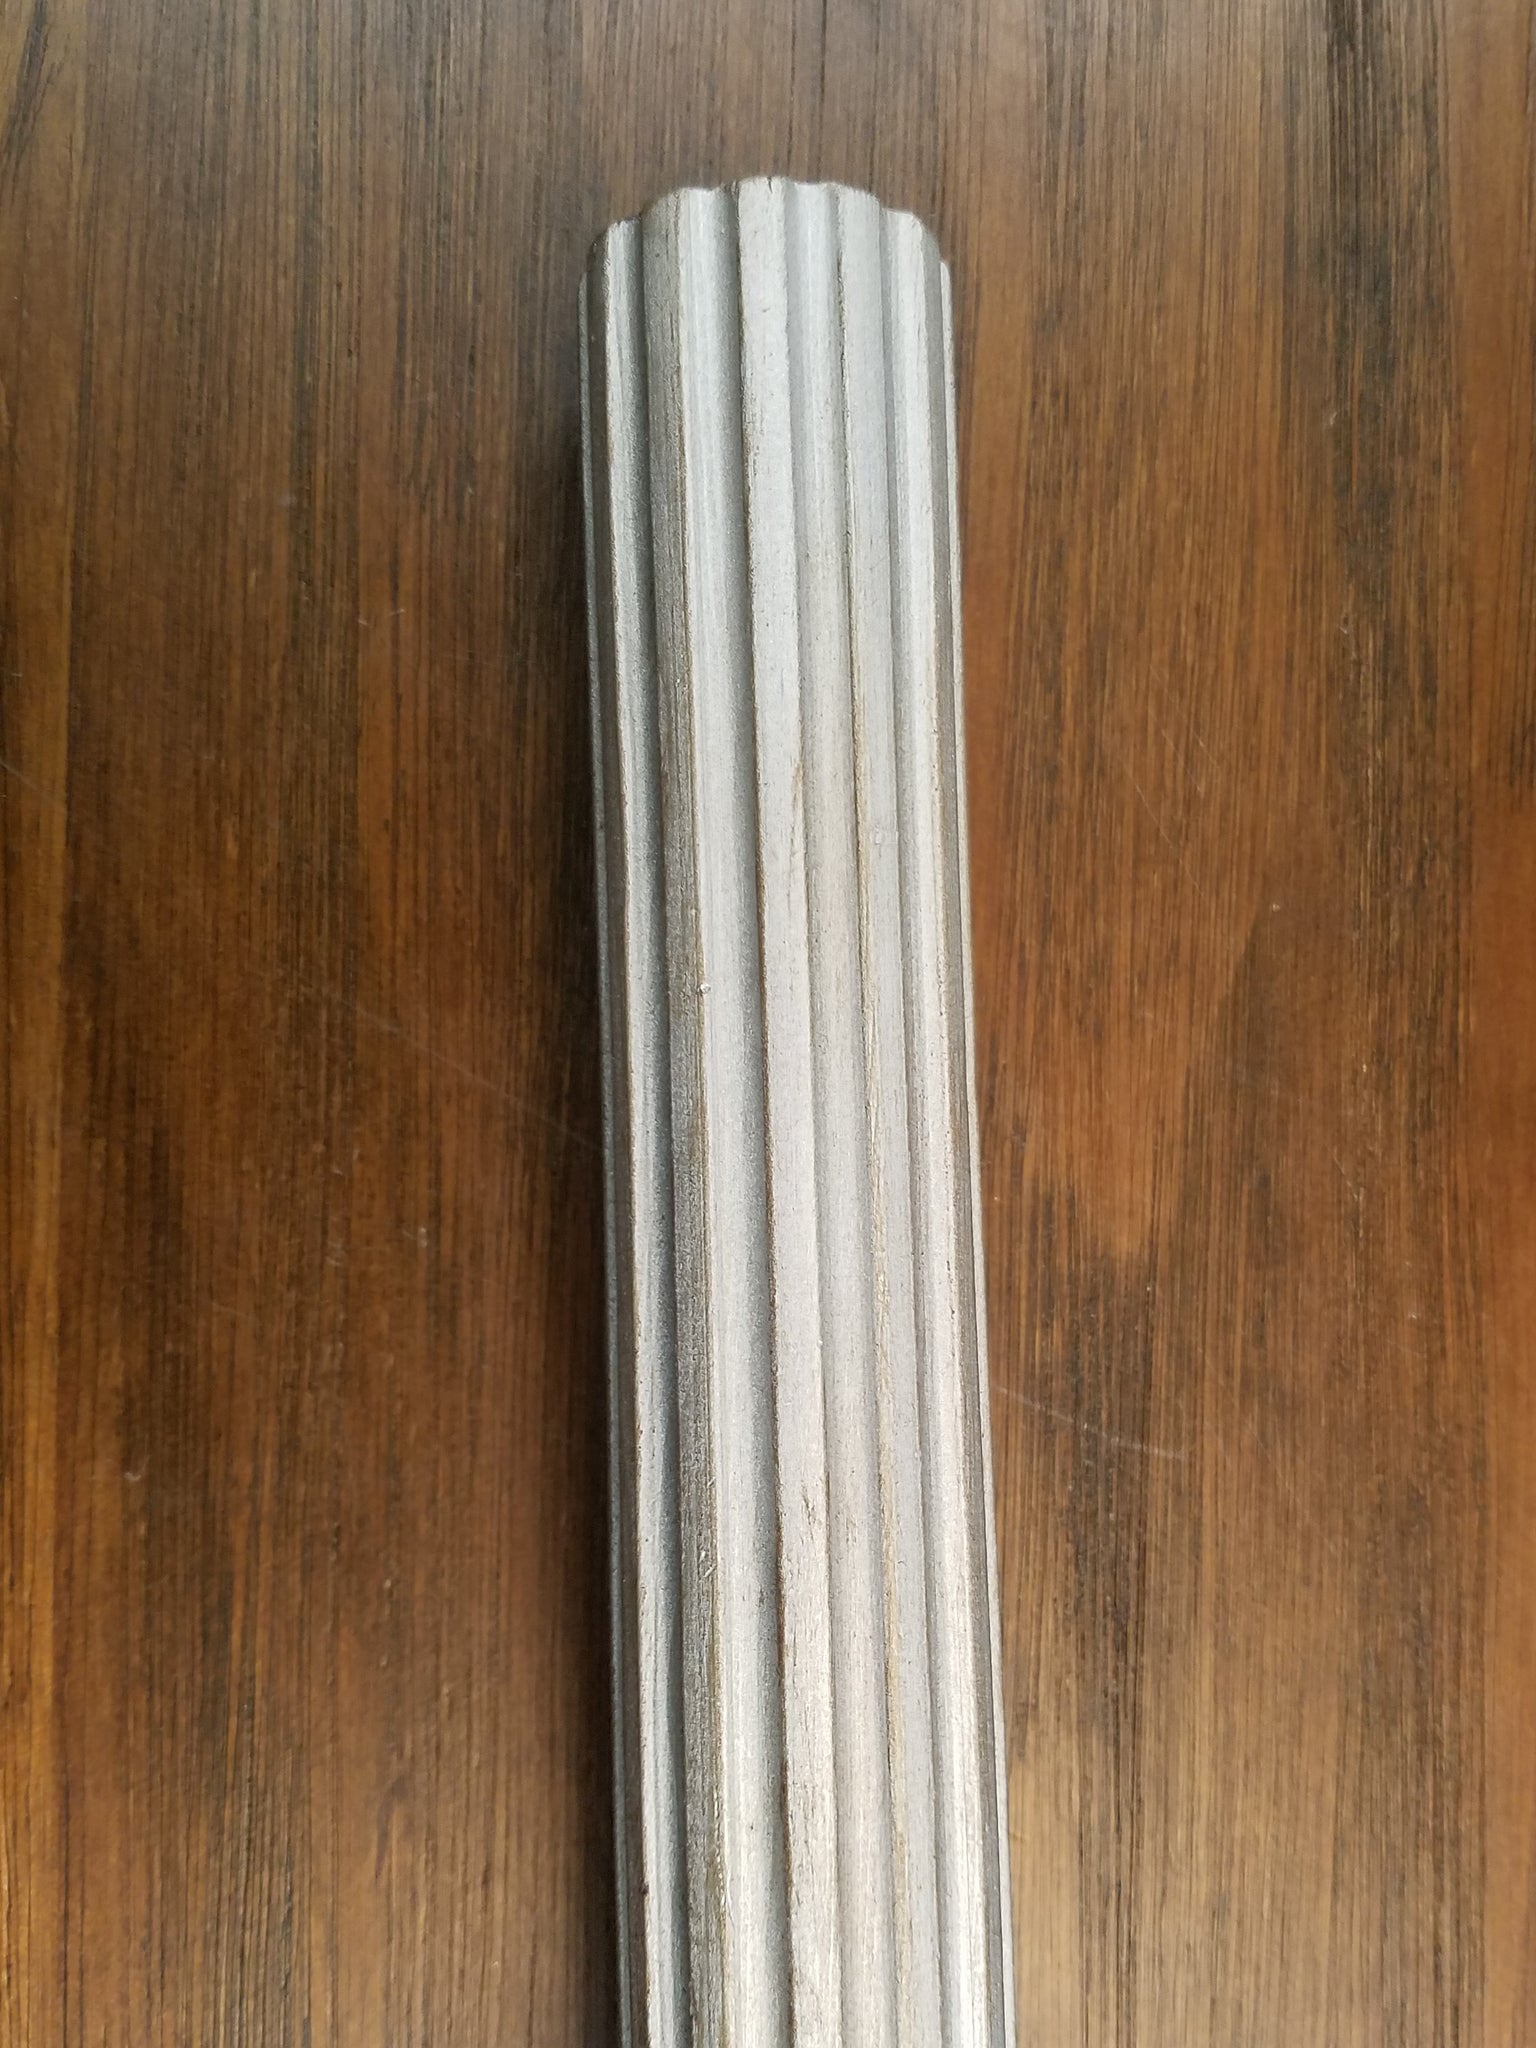 "1-3/4"" Fluted Wood Pole, 6' long."